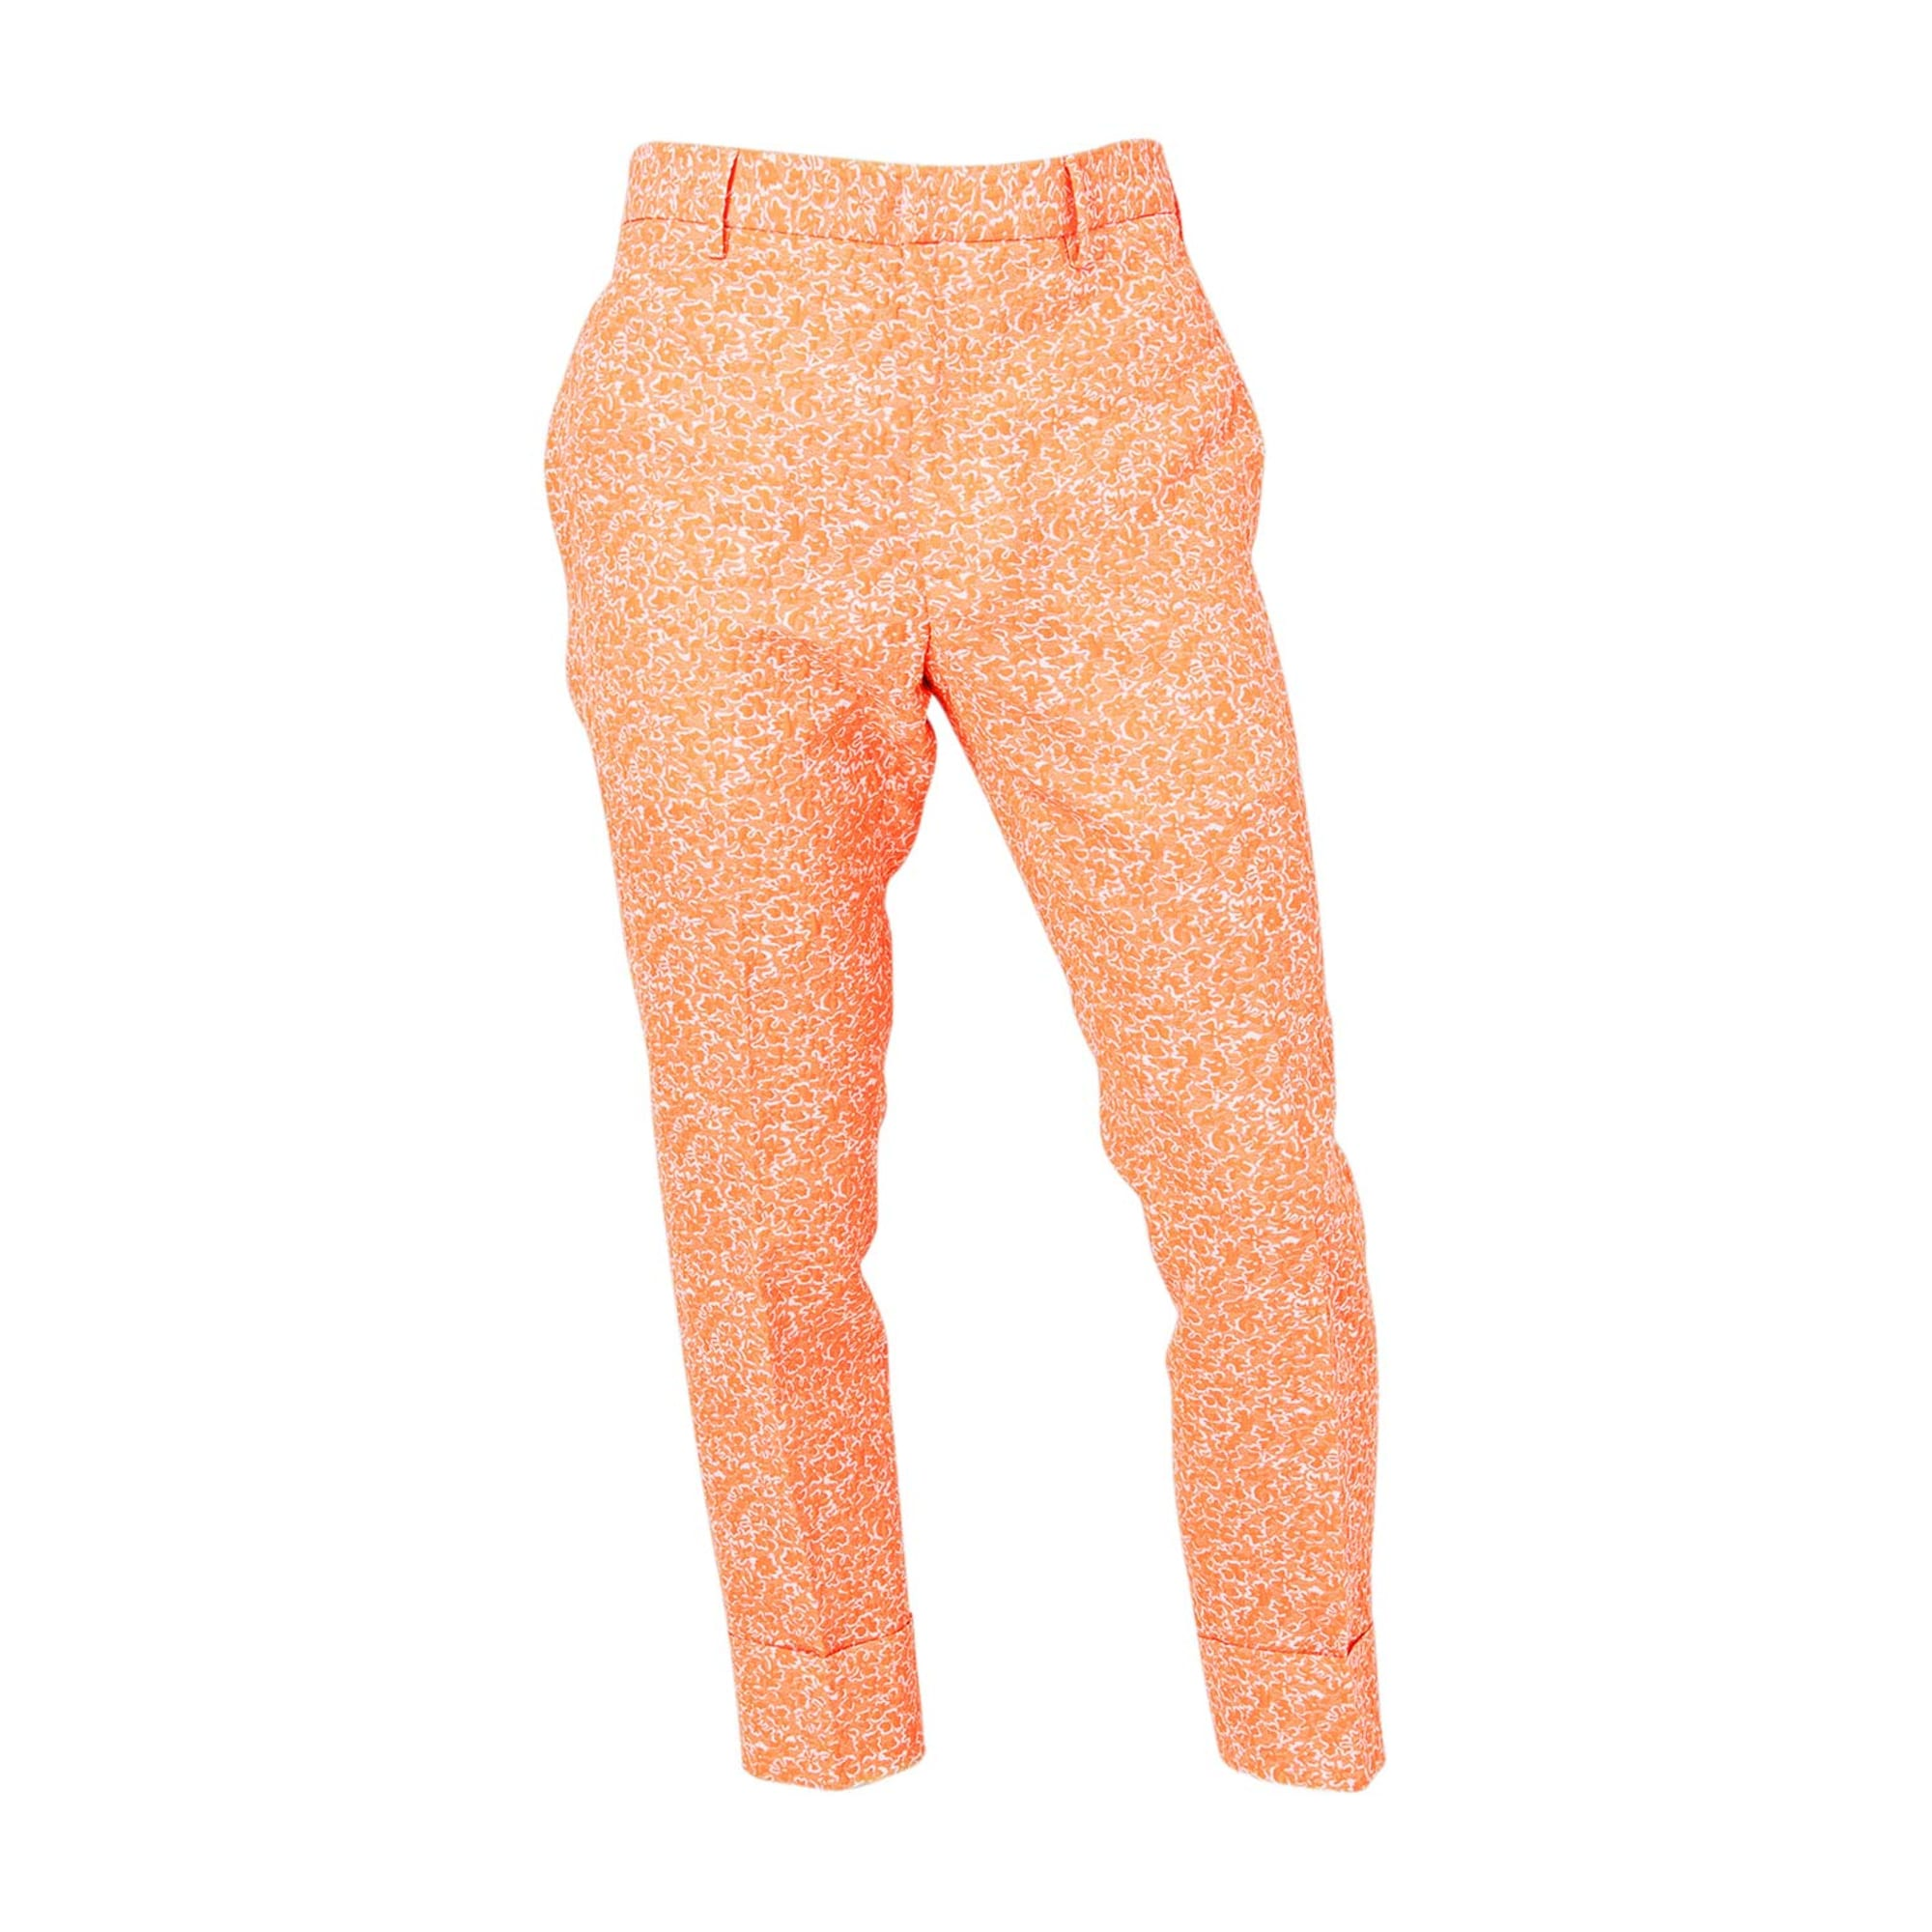 Pantalon droit JIL SANDER Orange